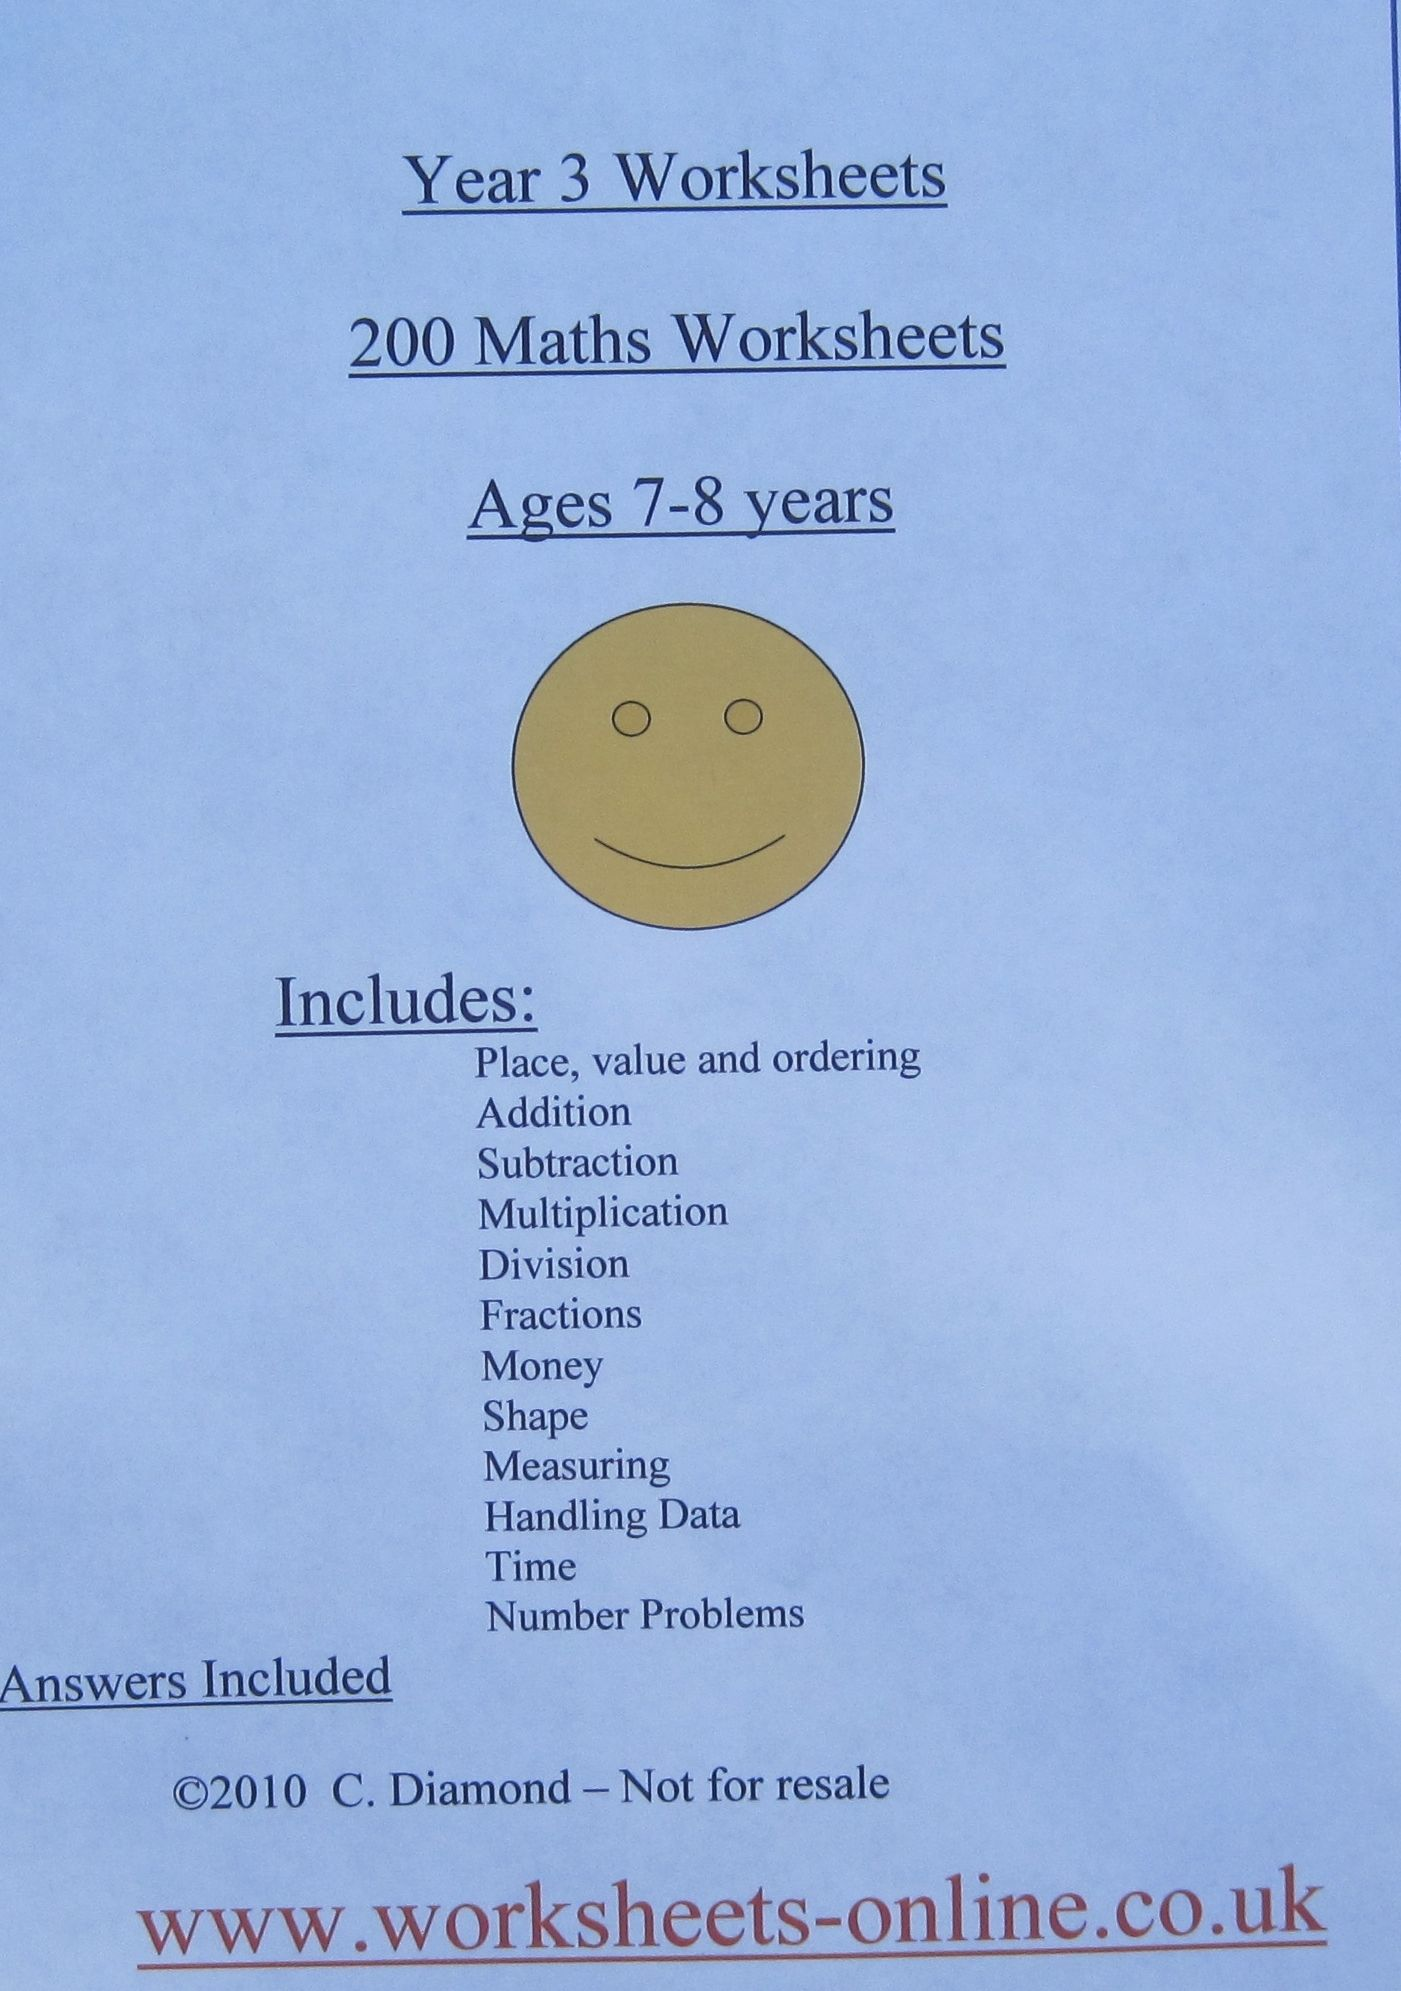 hight resolution of 200 Year 3 Maths Worksheets for children aged 7 - 8 years old.   Year 3  maths worksheets